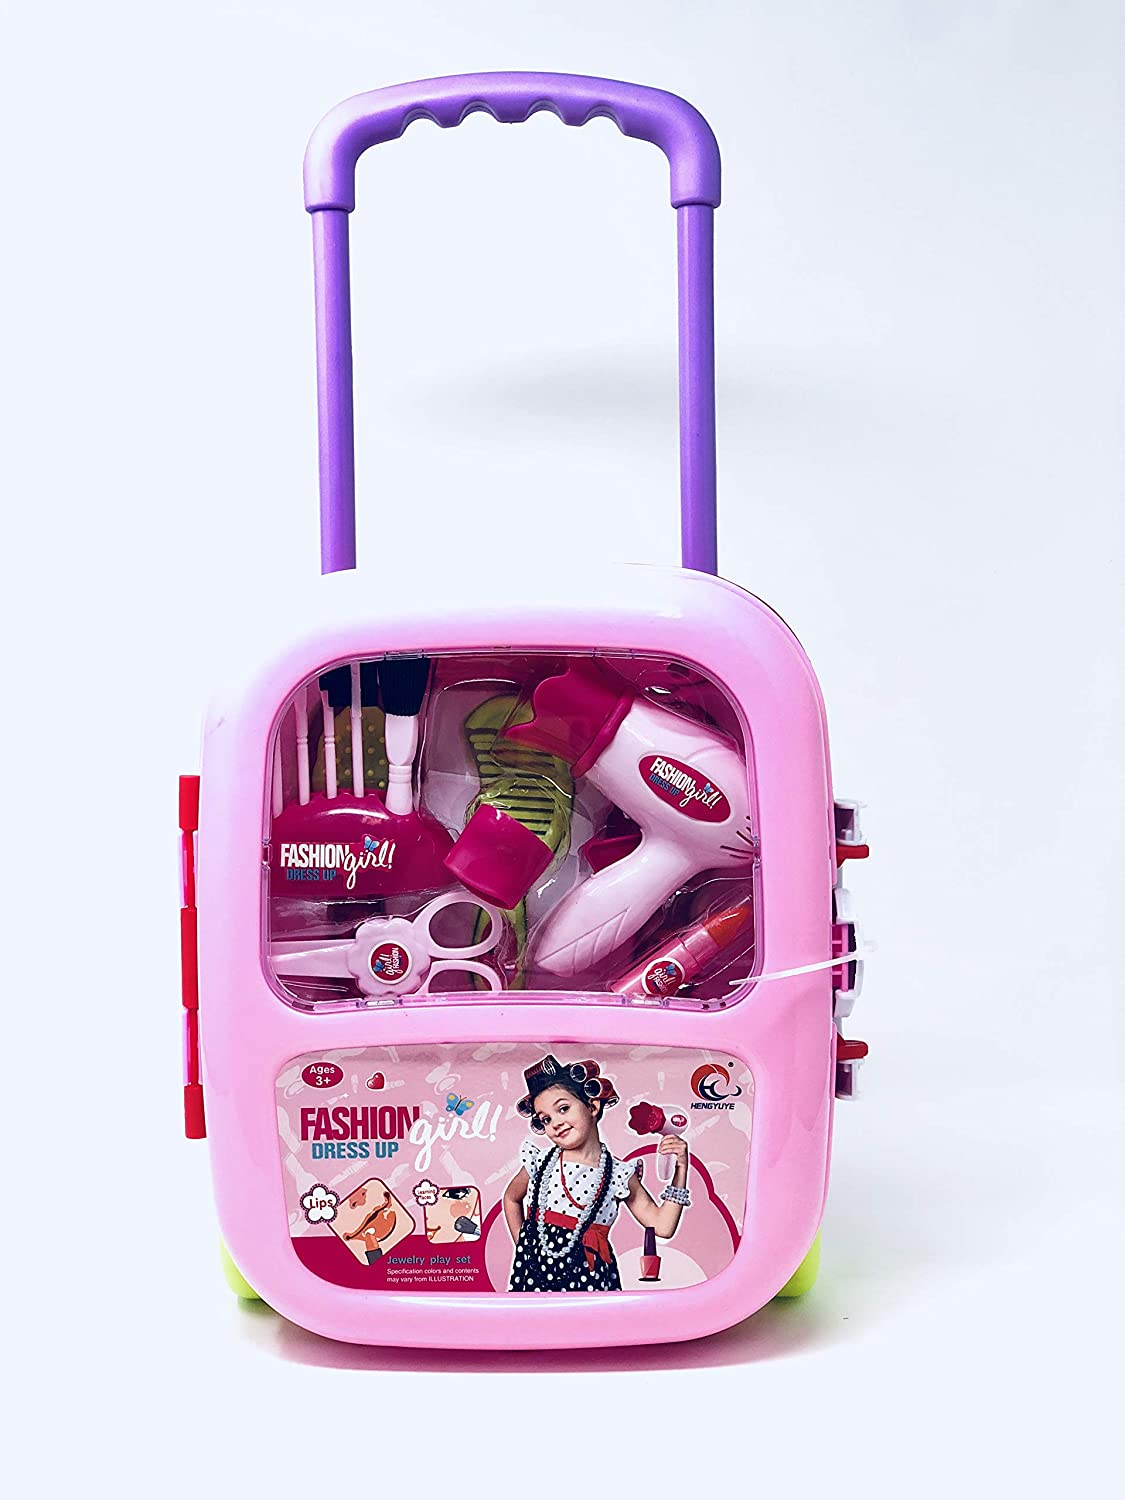 JOYSAE Fashion Dress up Girls Beauty Salon Play Trolley case Set with Hairdryer, Curling Iron, Comb,ScissorsMirror & Cosmetics Utensils